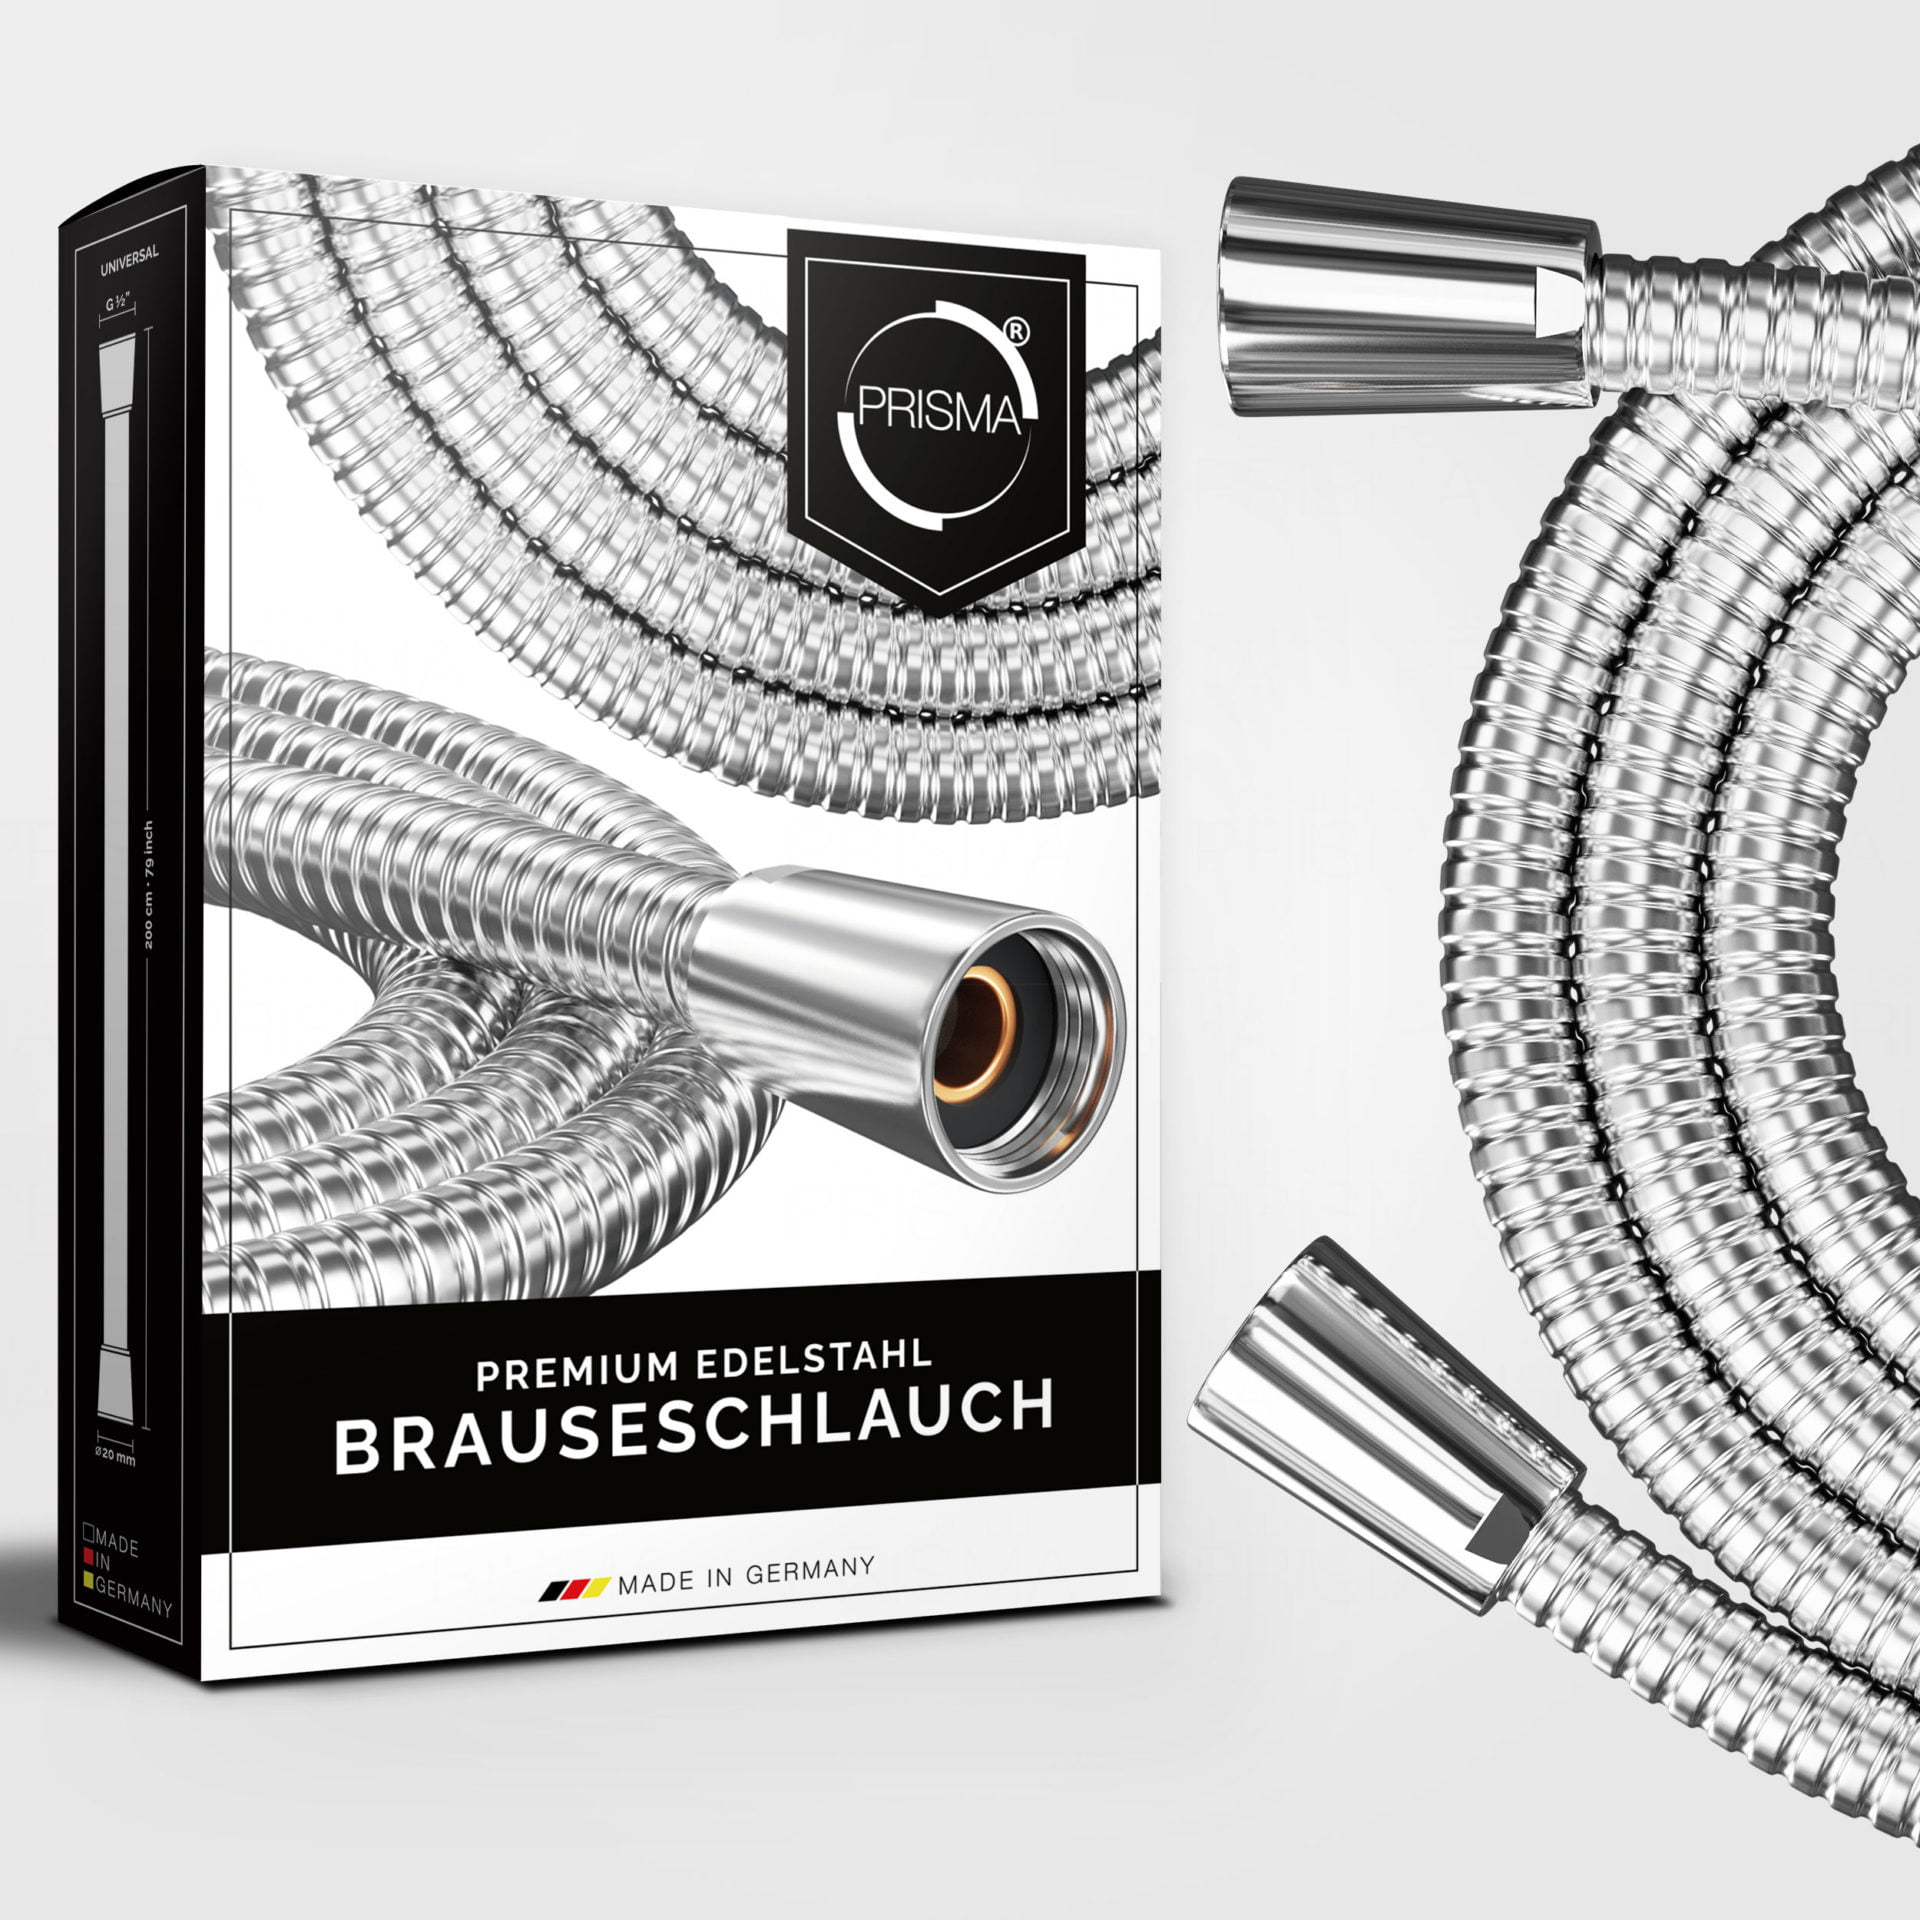 3977 Product - PRISMA Brauseschlauch aus Edelstahl • Made In Germany